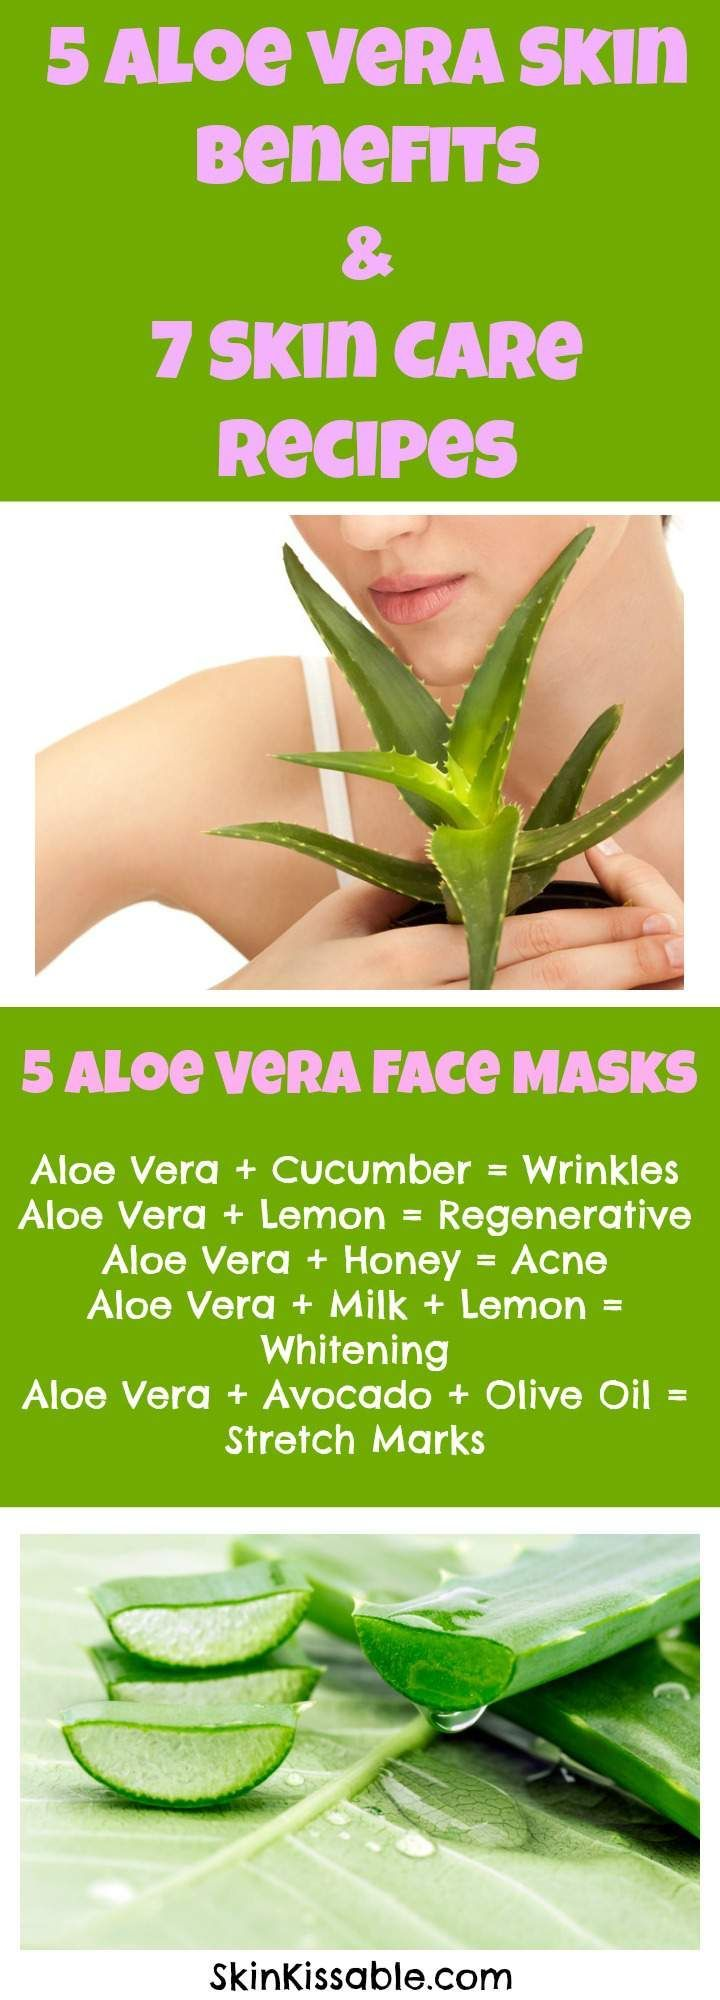 Aloe vera for skin care benefits and uses. Aloe vera homemade remedies for skin.